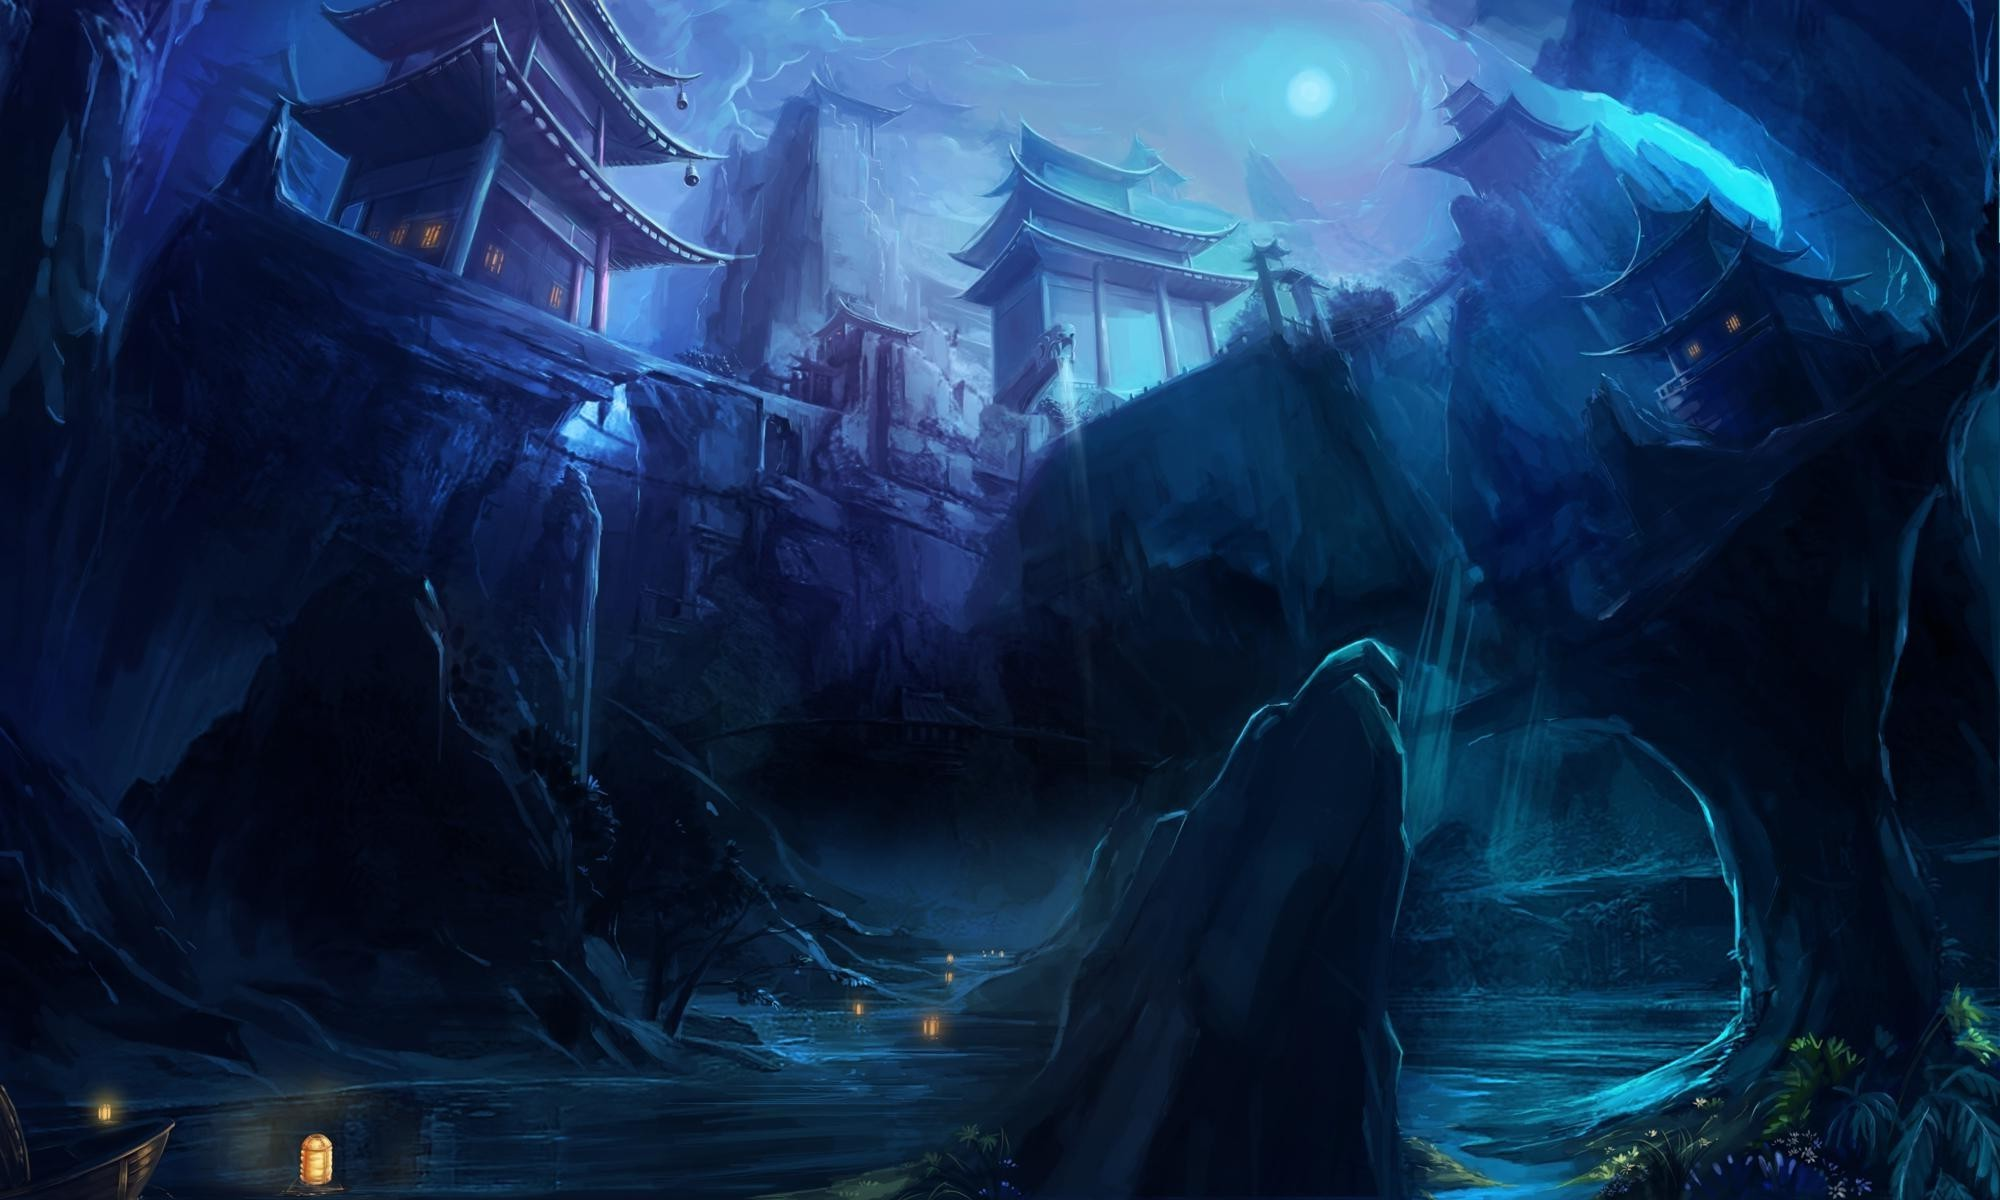 Anime Girl Wallpaper Waterfall Temple Fantasy Art Blue Wallpapers Hd Desktop And